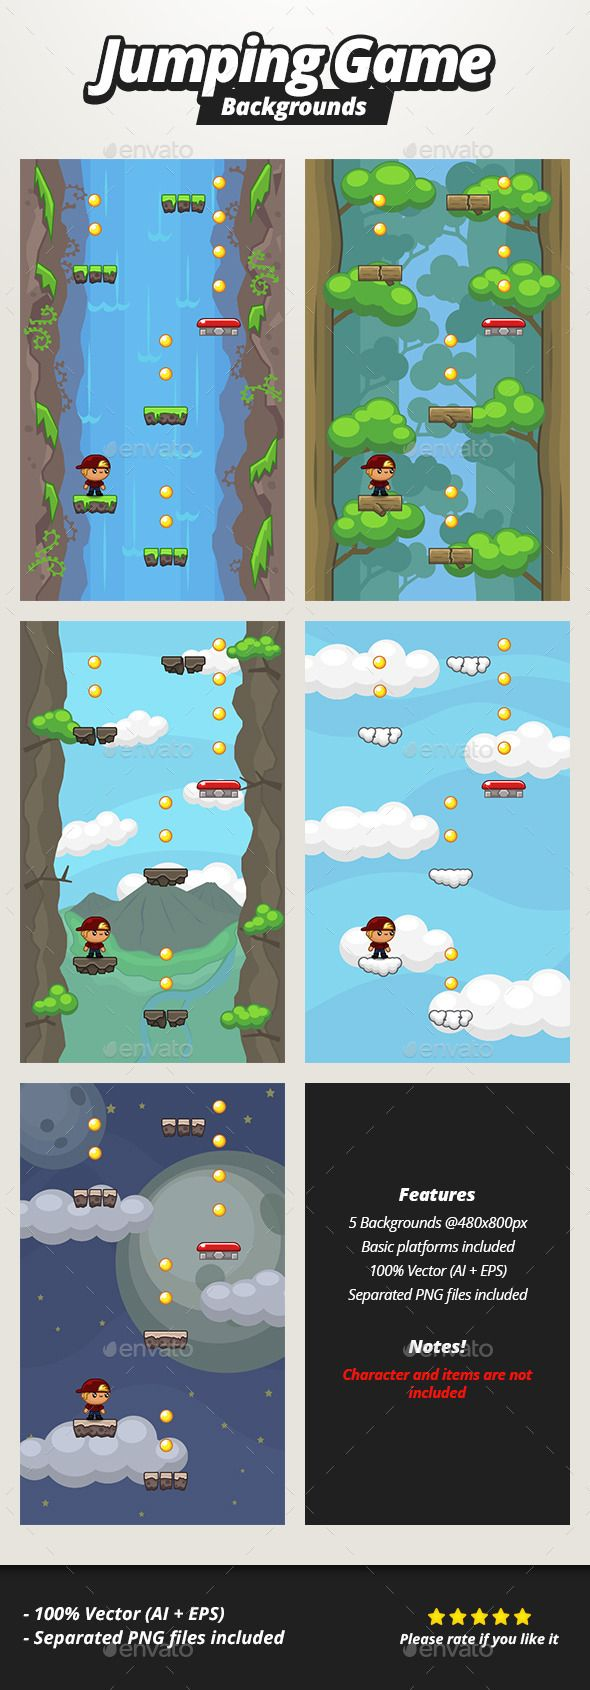 Jumping Game Backgrounds - Backgrounds Game Assets